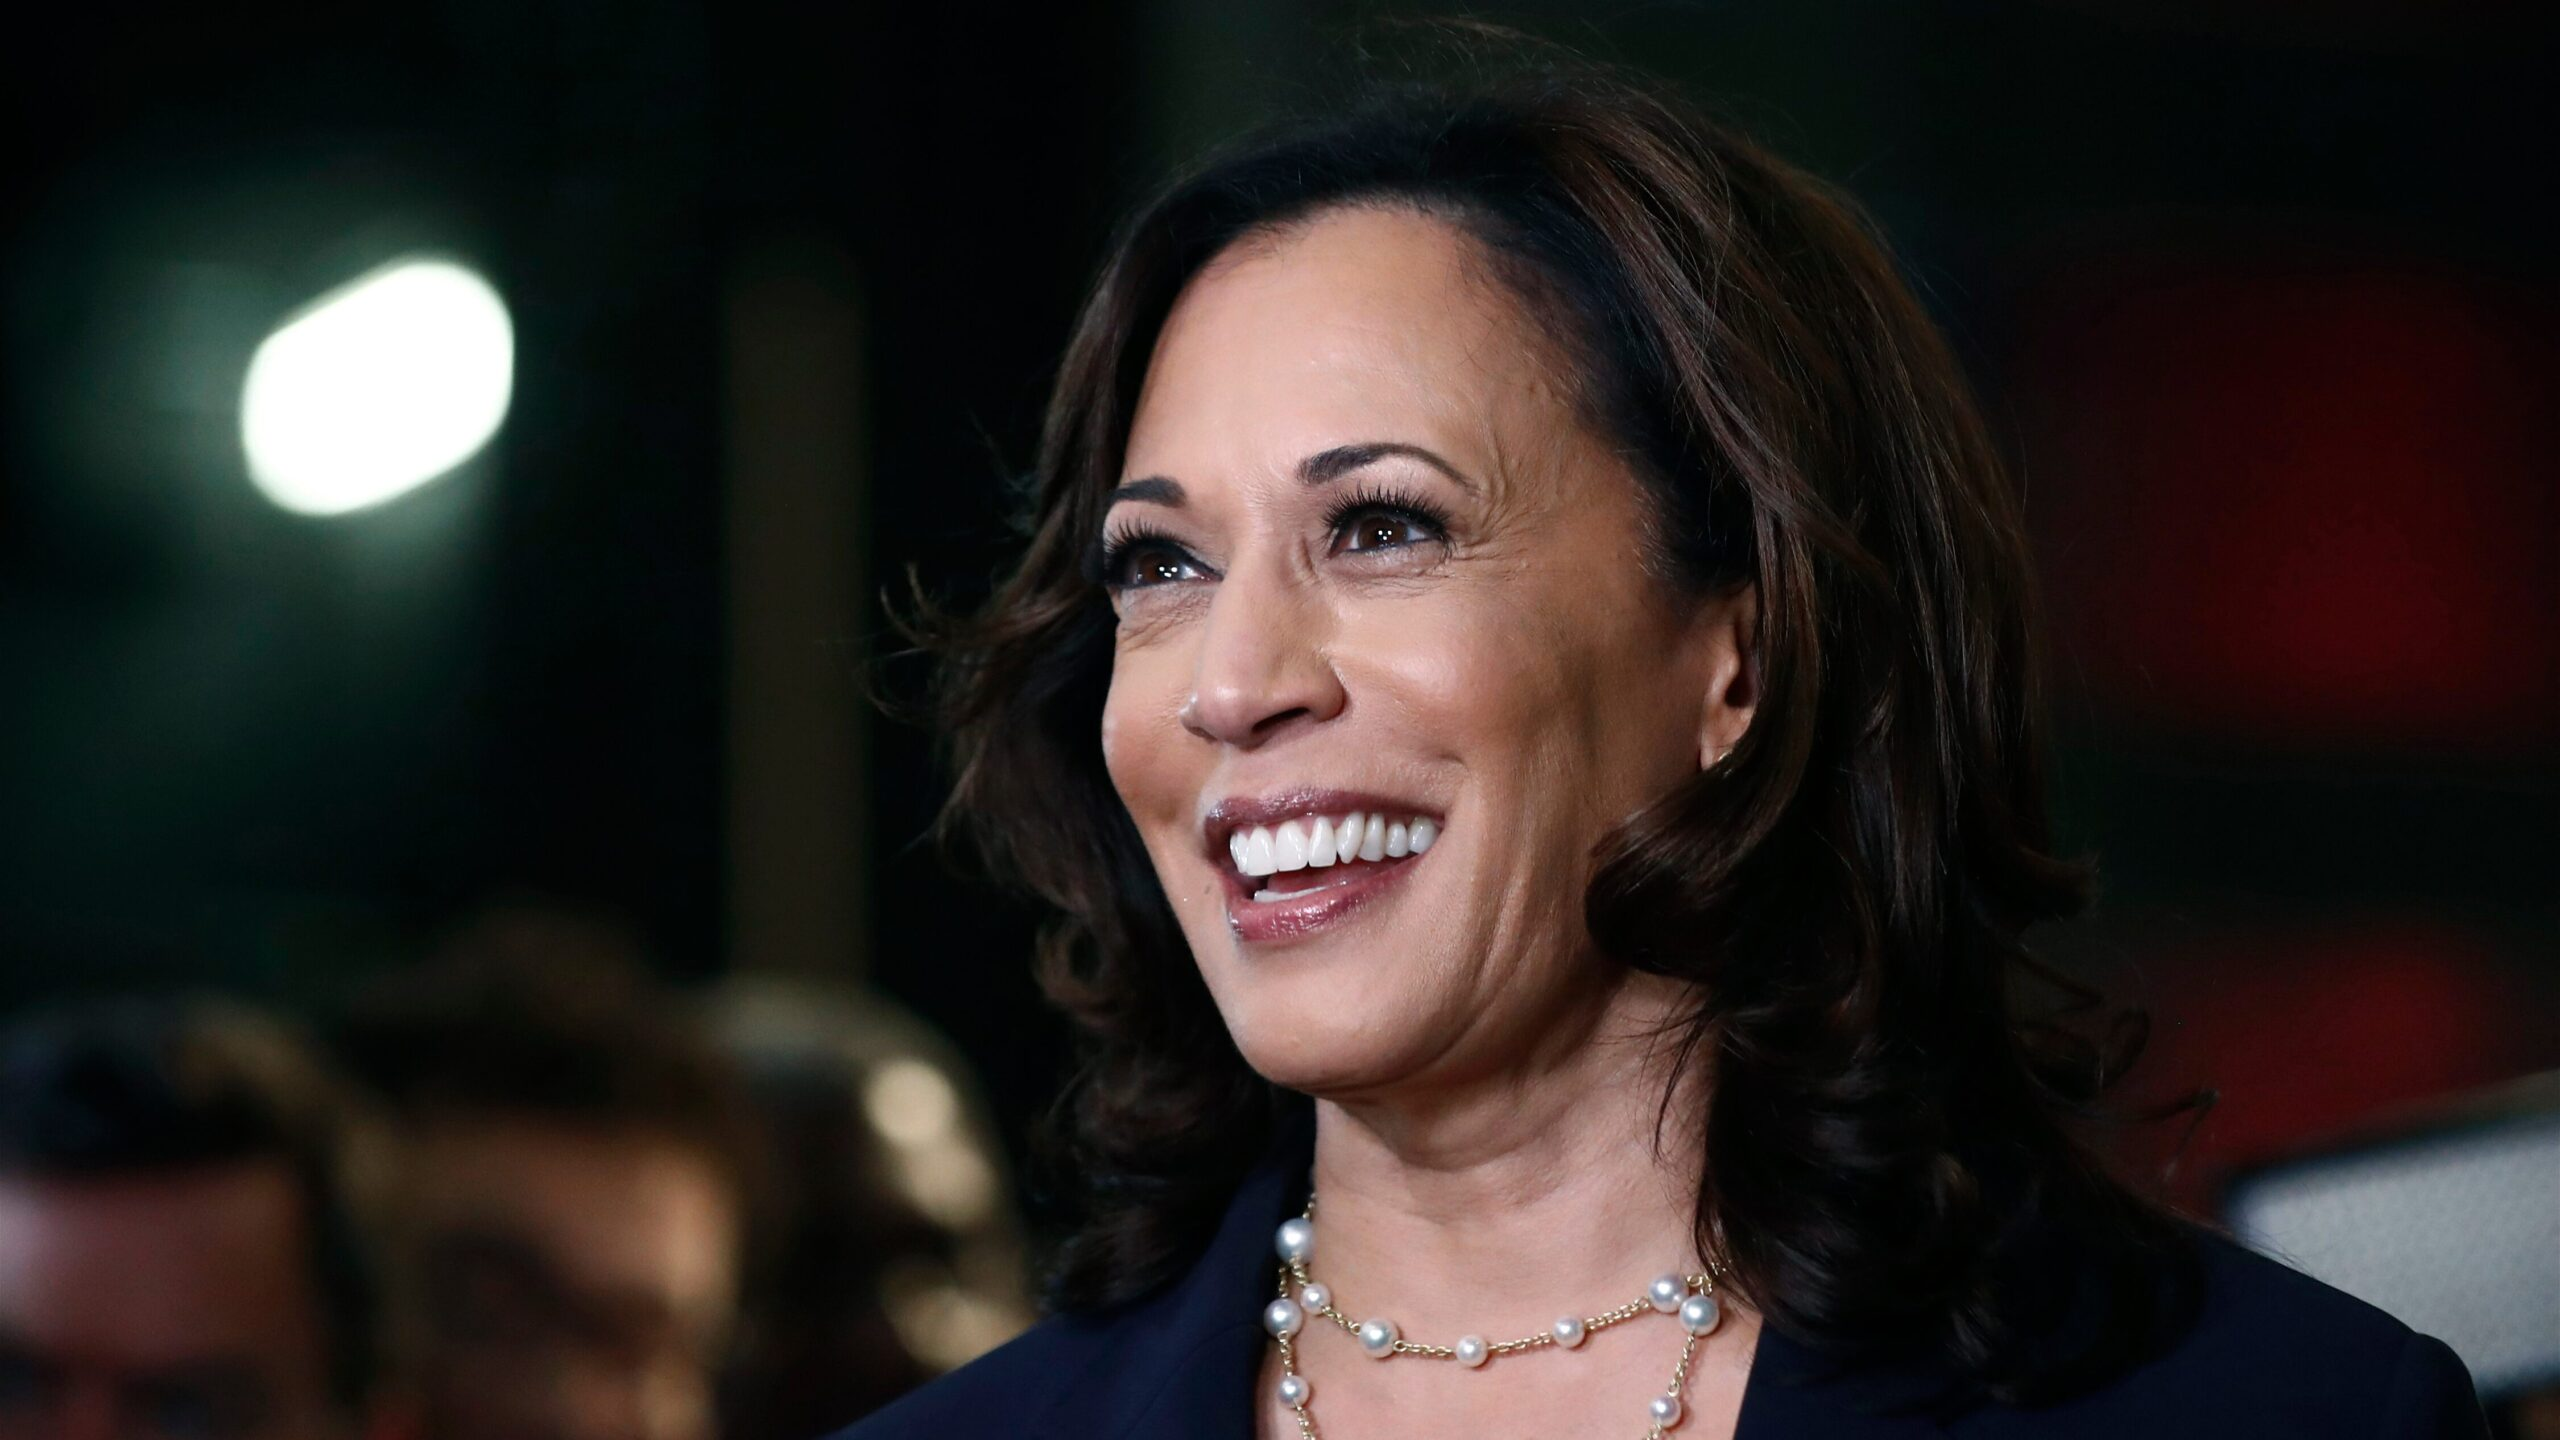 Flashback: Kamala Harris was open to packing Supreme Court to shift balance away from conservatives